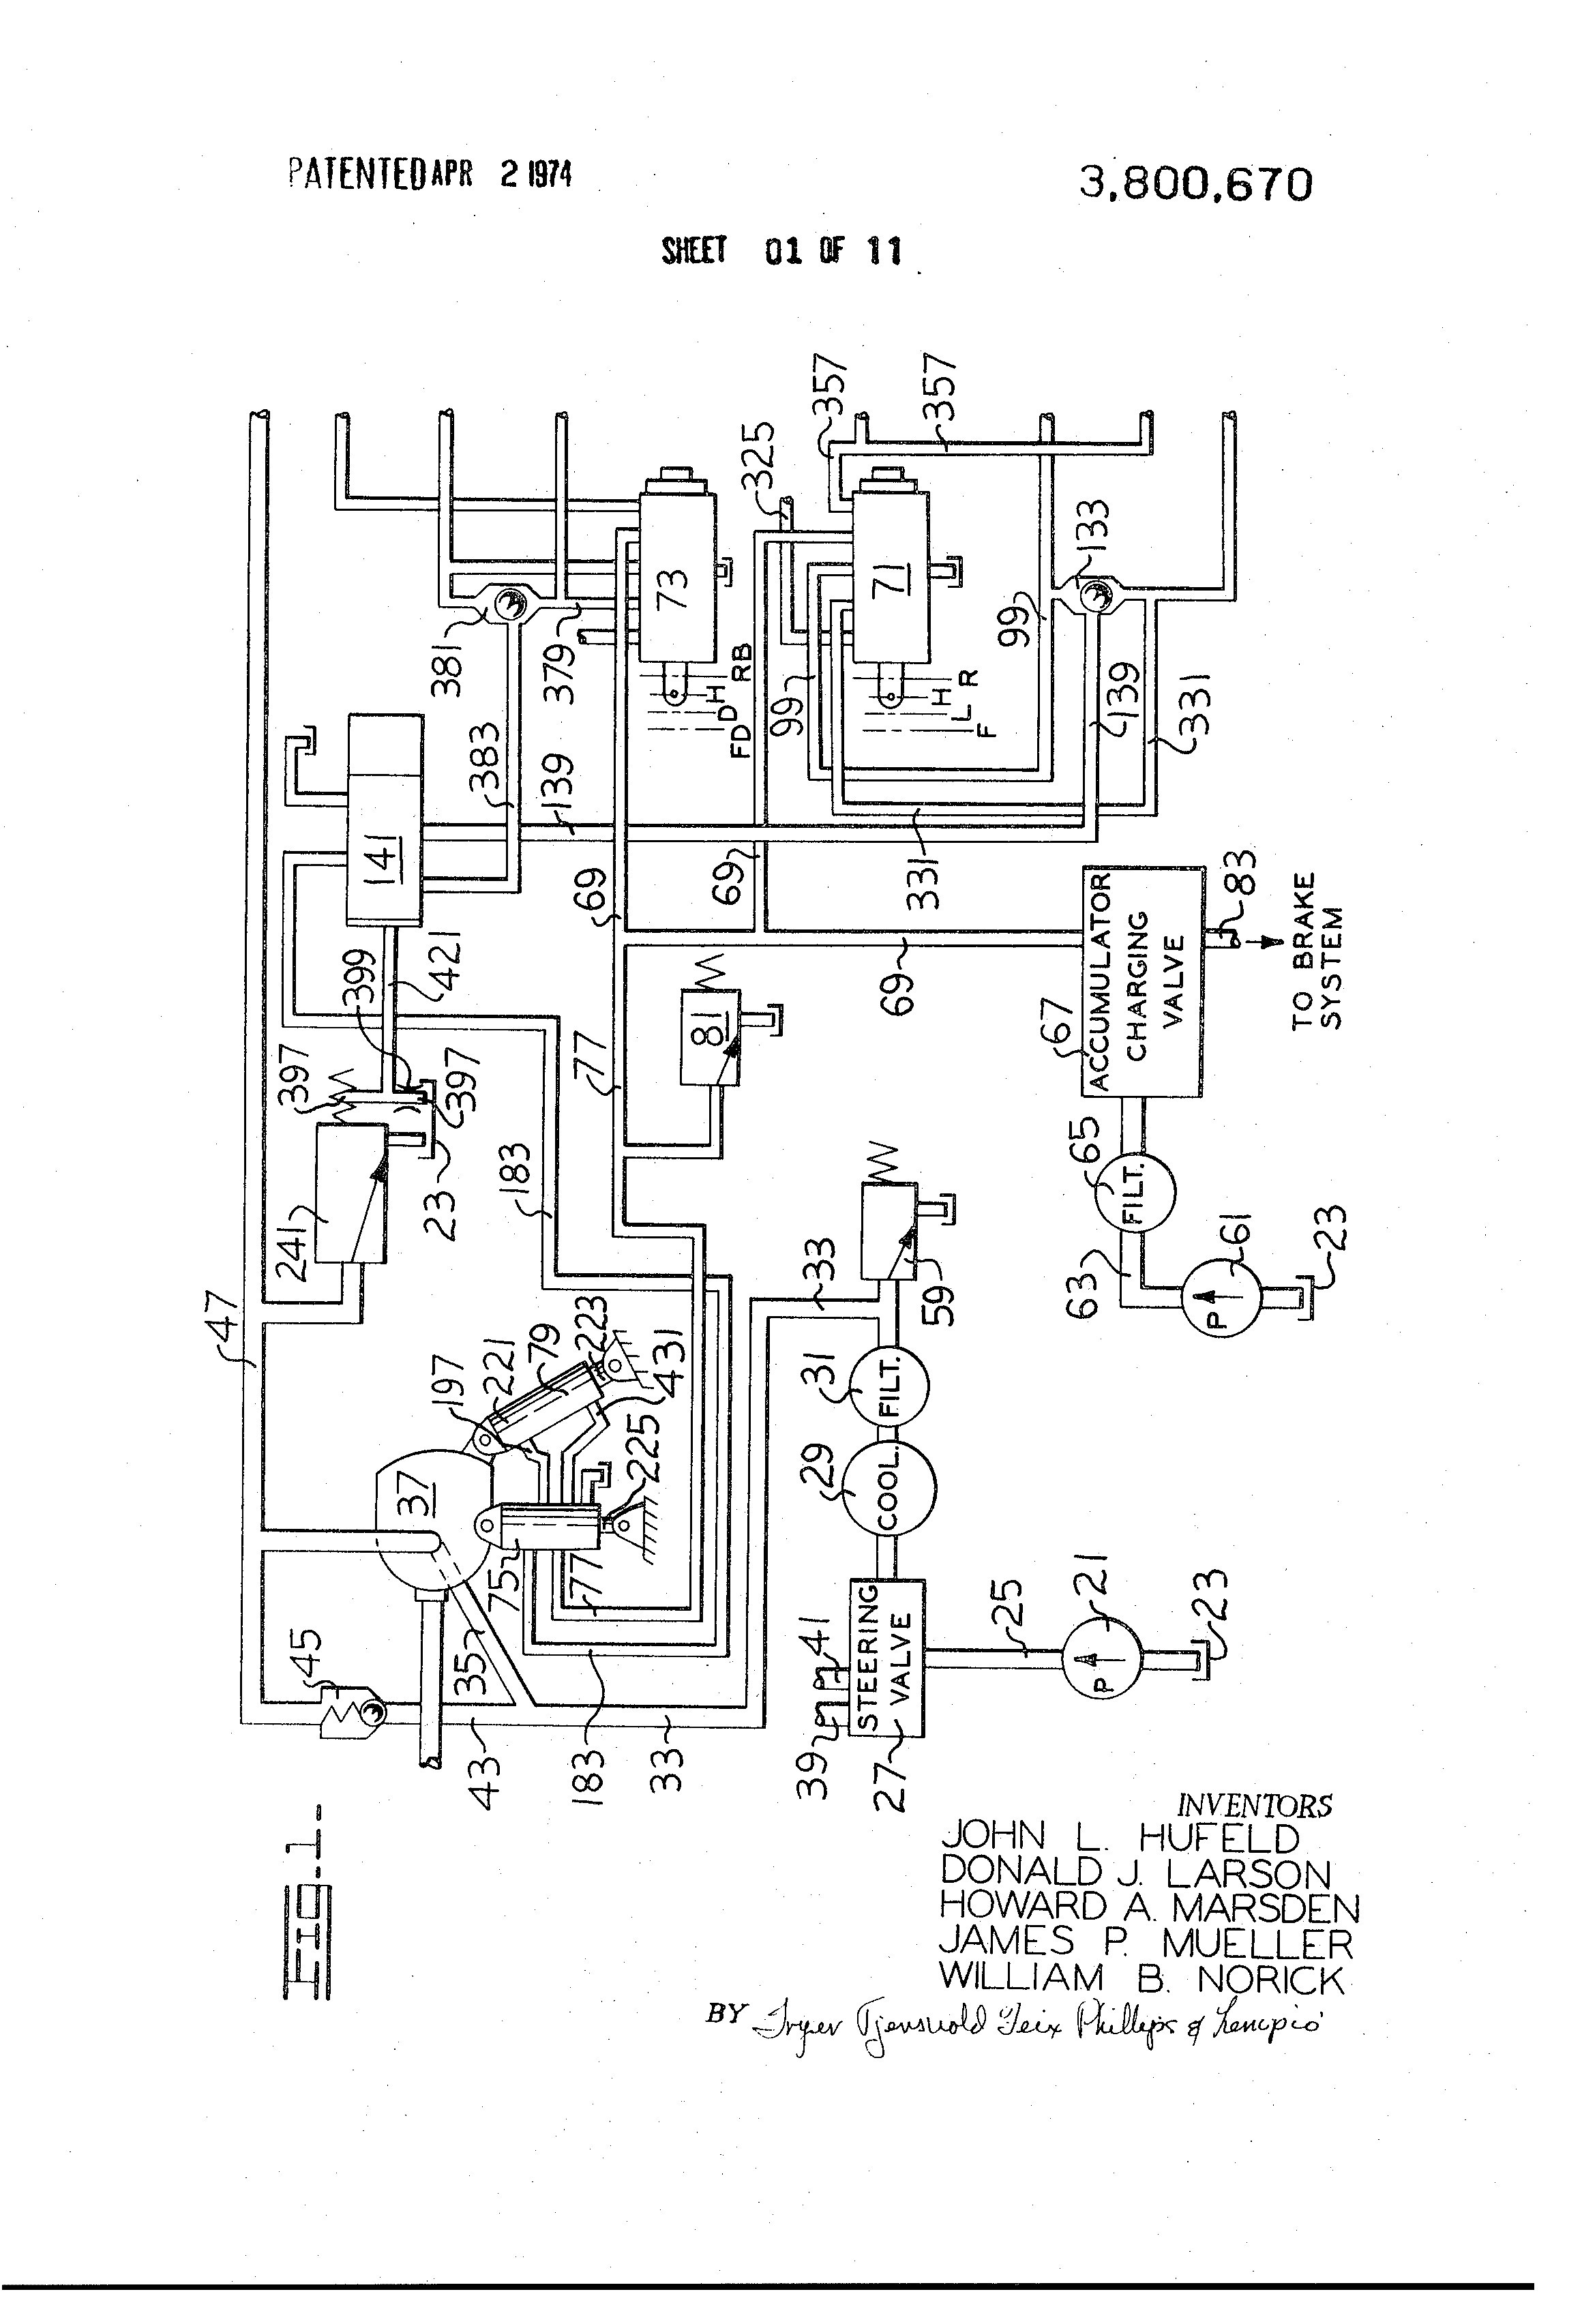 Wiring Diagram For Mey Harris Pony - 5.3.stefvandenheuvel.nl • on alternator generator, how alternator works diagram, car alternator diagram, 13av60kg011 parts diagram, alternator fuse diagram, ac compressor wire diagram, alternator charging system, ford alternator diagram, alex anderson alternator diagram, toyota alternator diagram, alternator winding diagram, dodge alternator diagram, gm alternator diagram, alternator replacement, alternator plug diagram, alternator relay diagram, alternator connector diagram, generator diagram, alternator parts, alternator engine diagram,